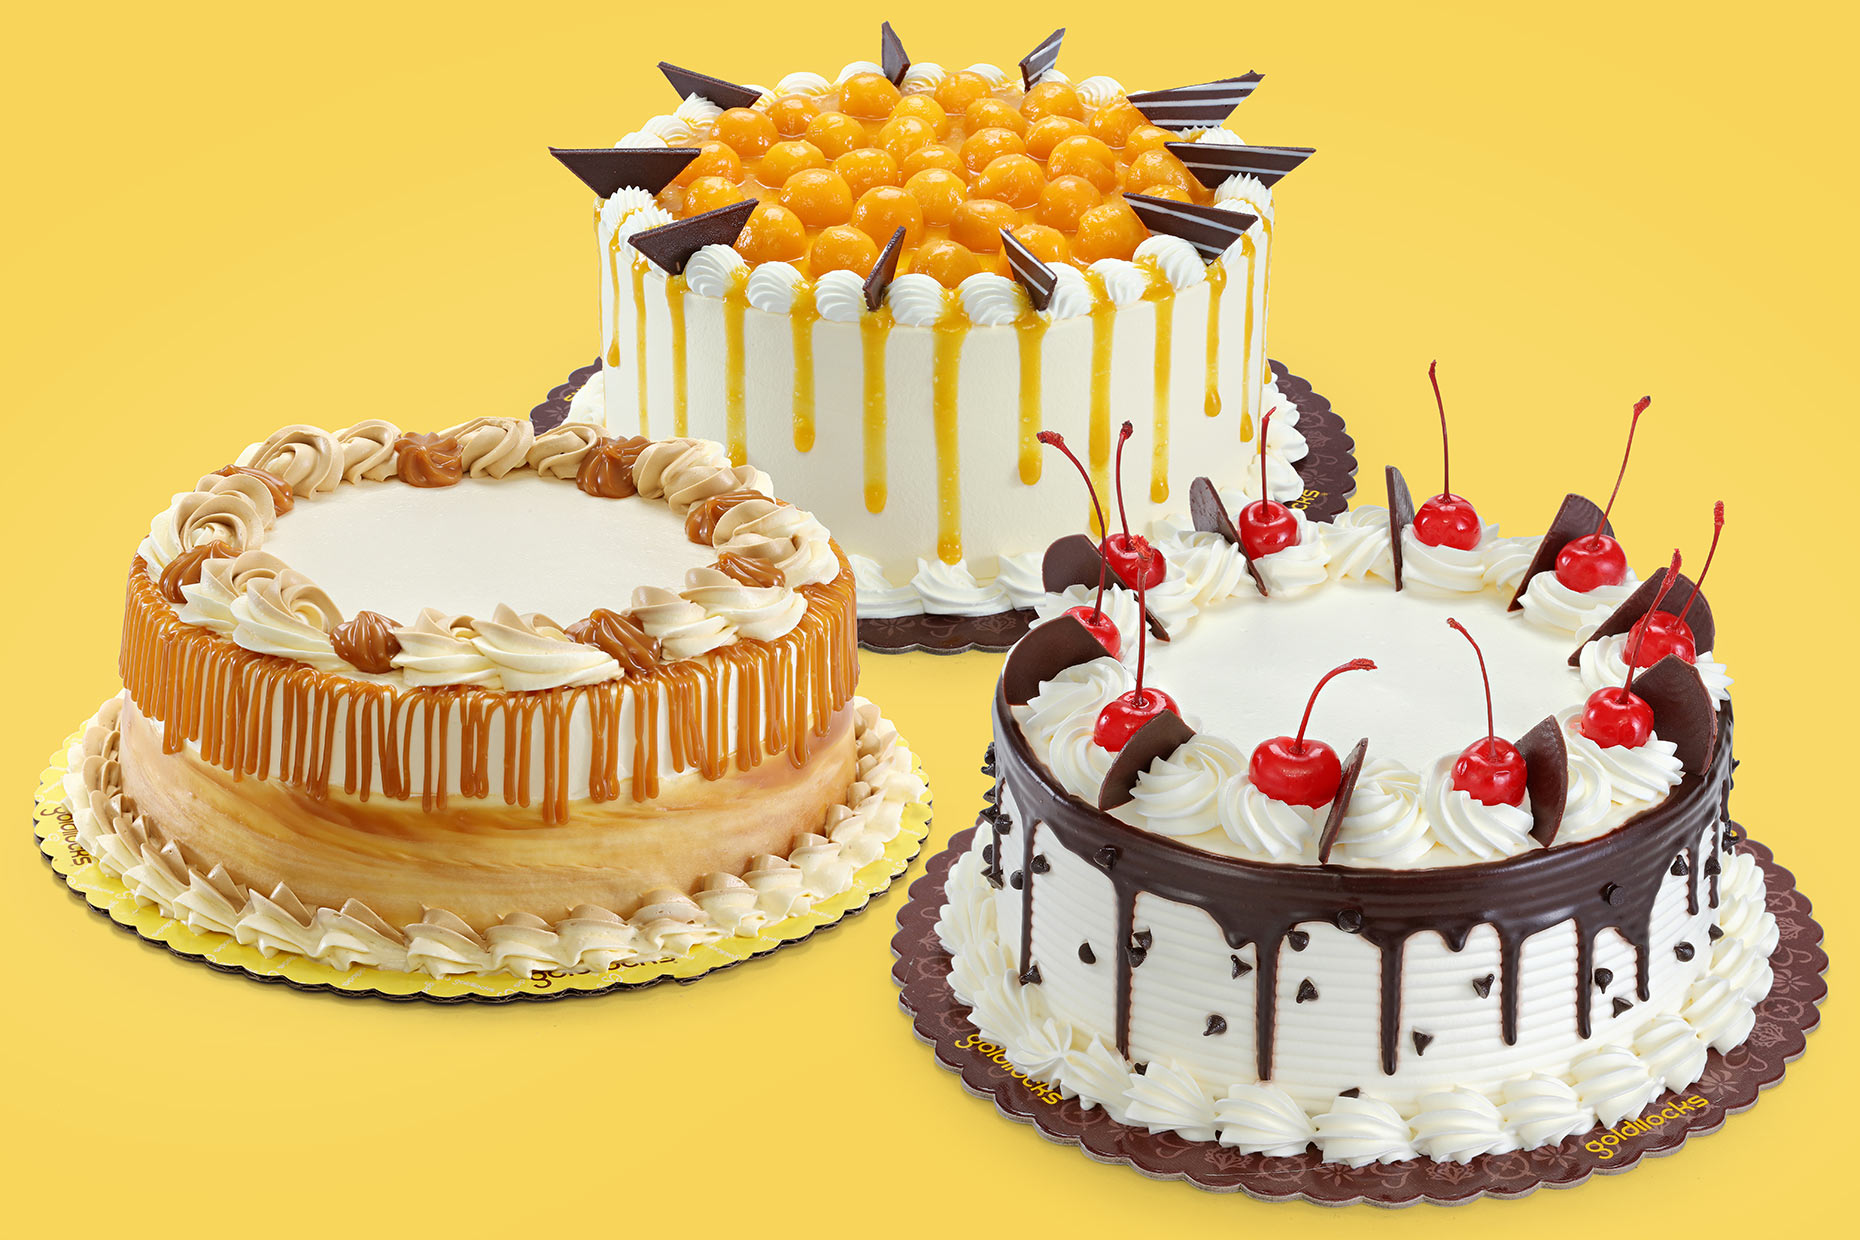 cakes compsited on yellow background